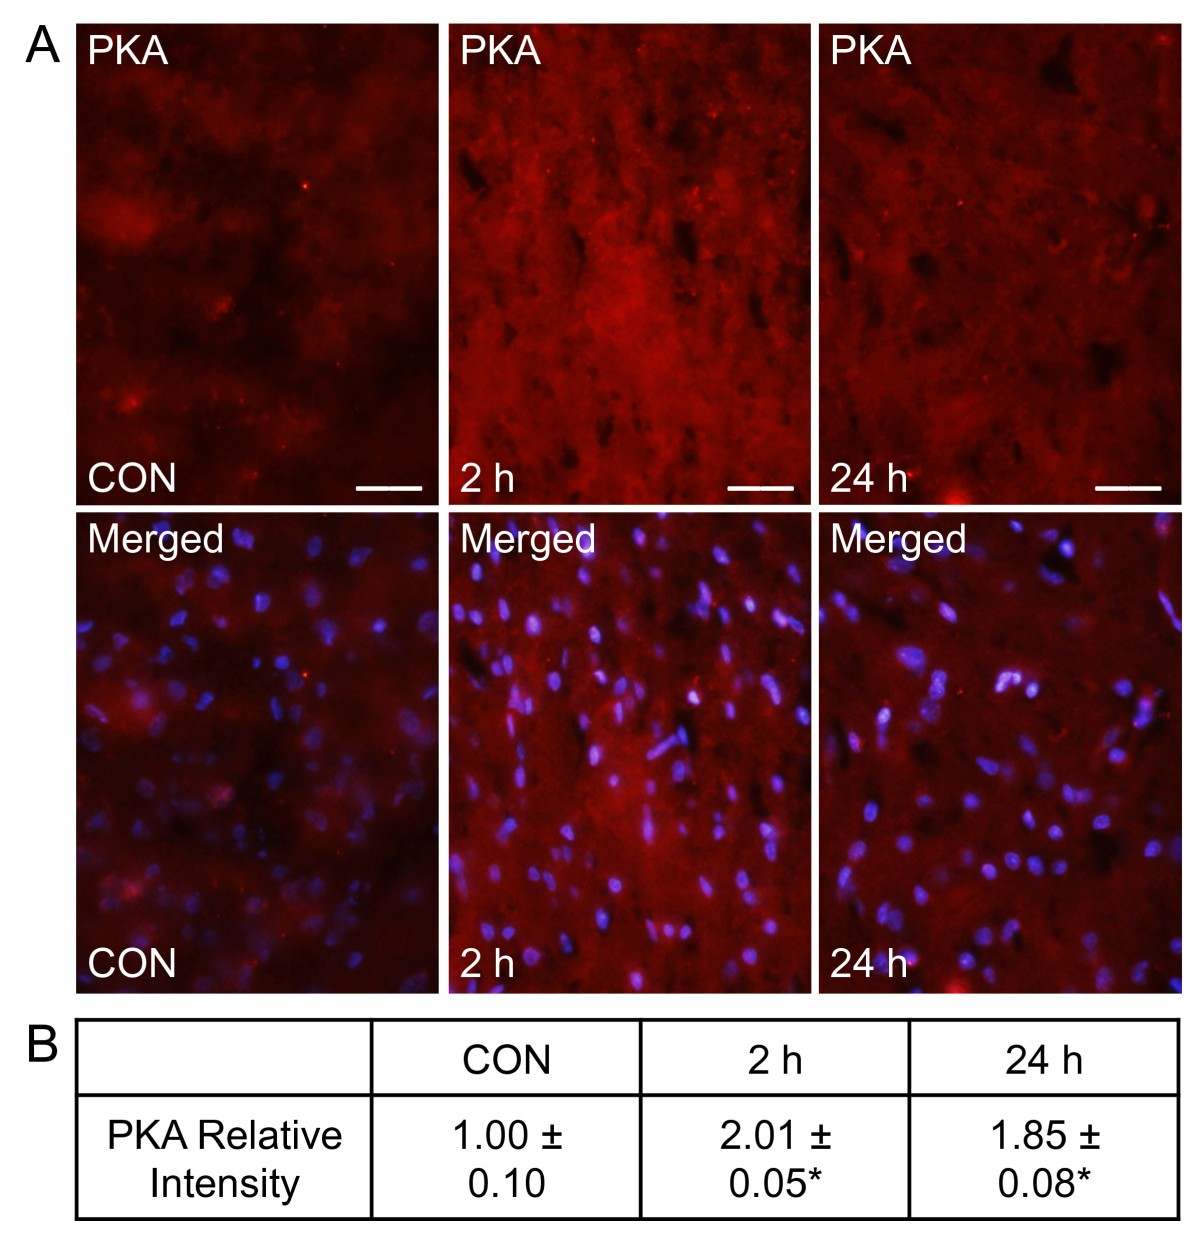 Calcitonin gene-related peptide promotes cellular changes in